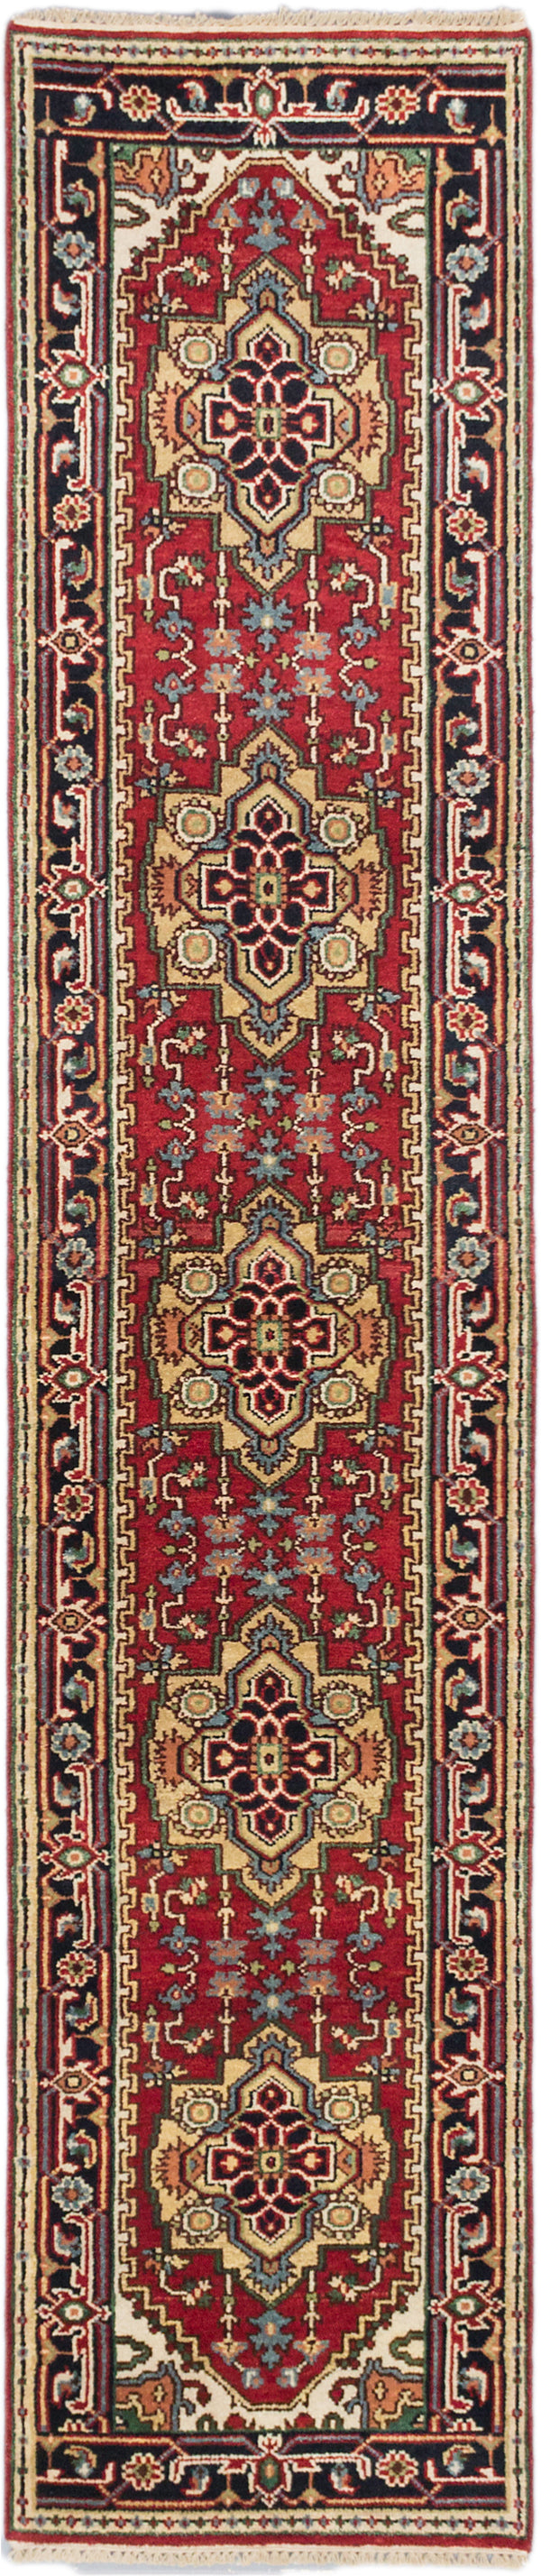 "Hand-knotted Indian Floral  Traditional Serapi-Heritage Runner rug  Black, Dark Red 2'6 x 11'9"" """